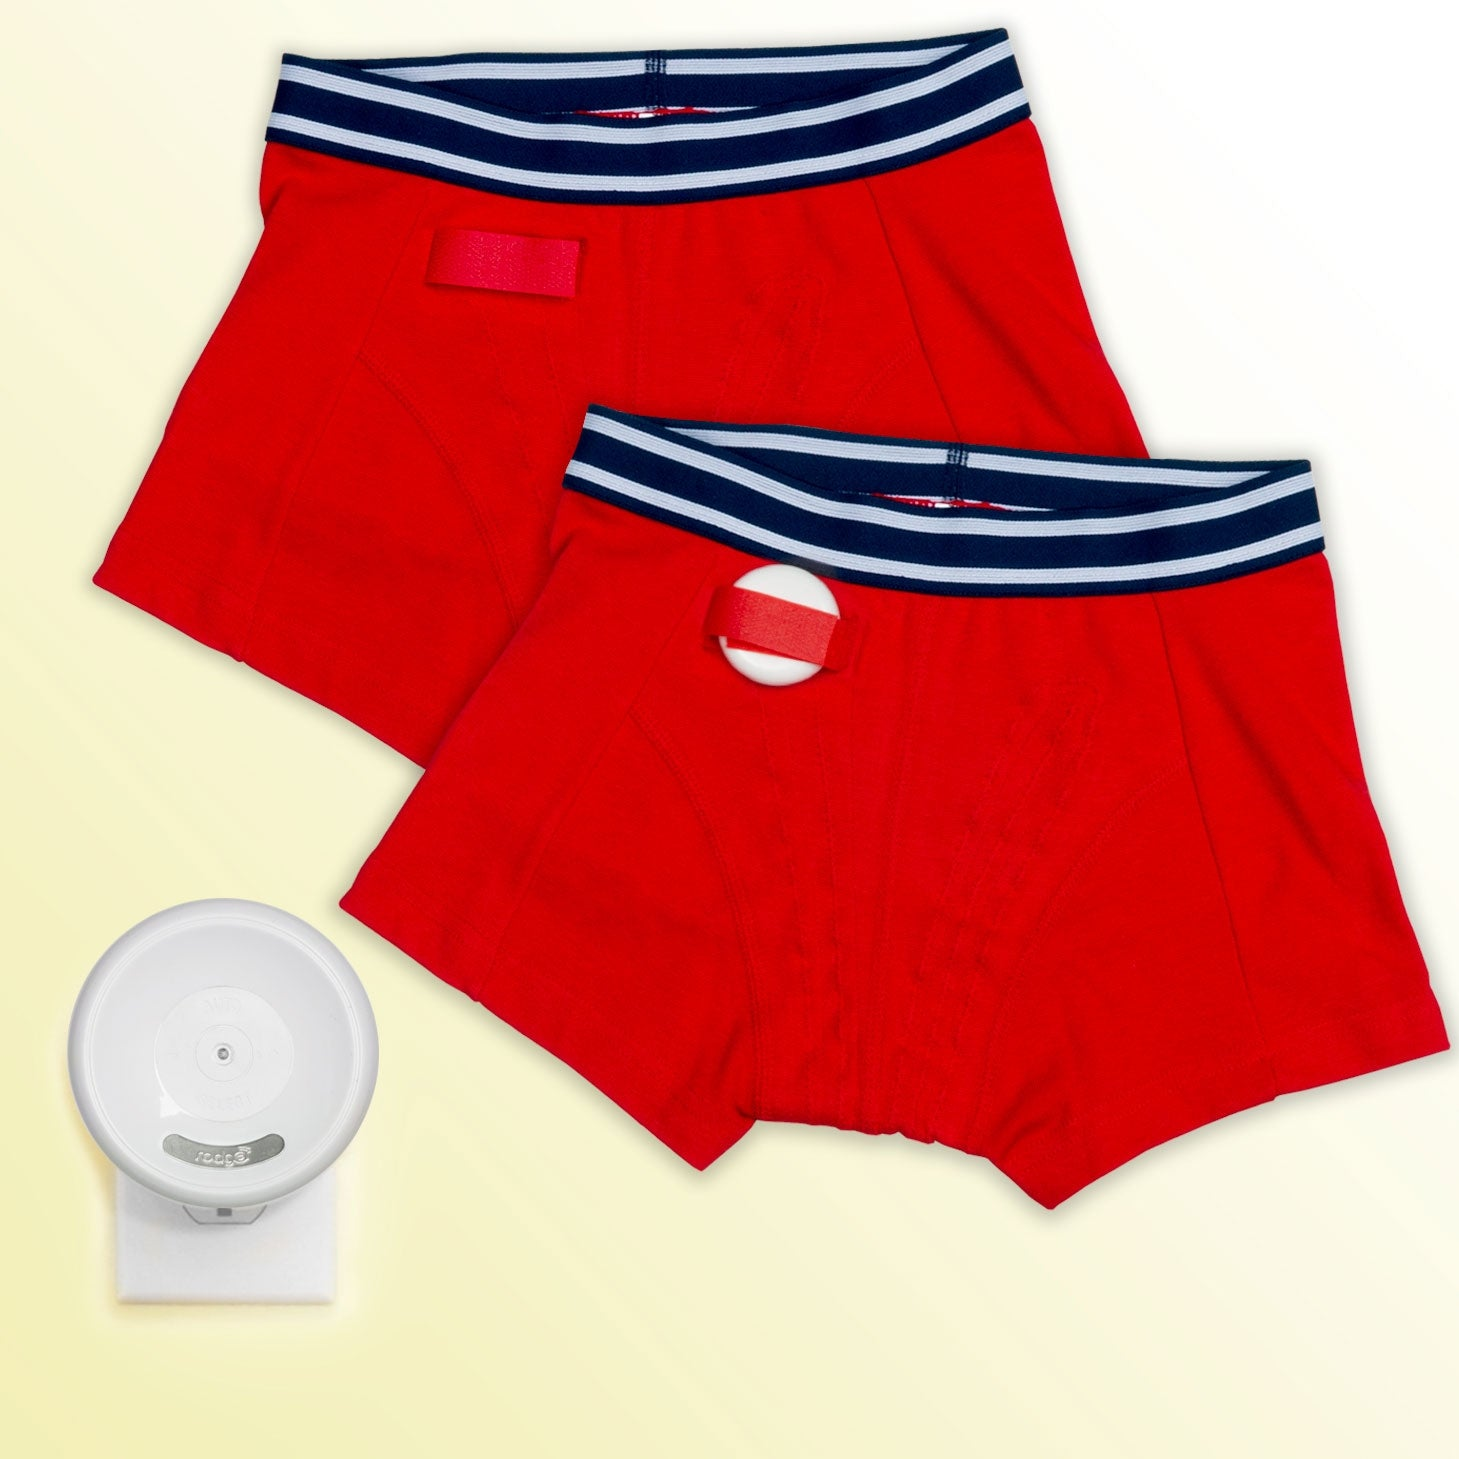 Alarms-Rodger Wireless Bedwetting Alarm System-Red Briefs only